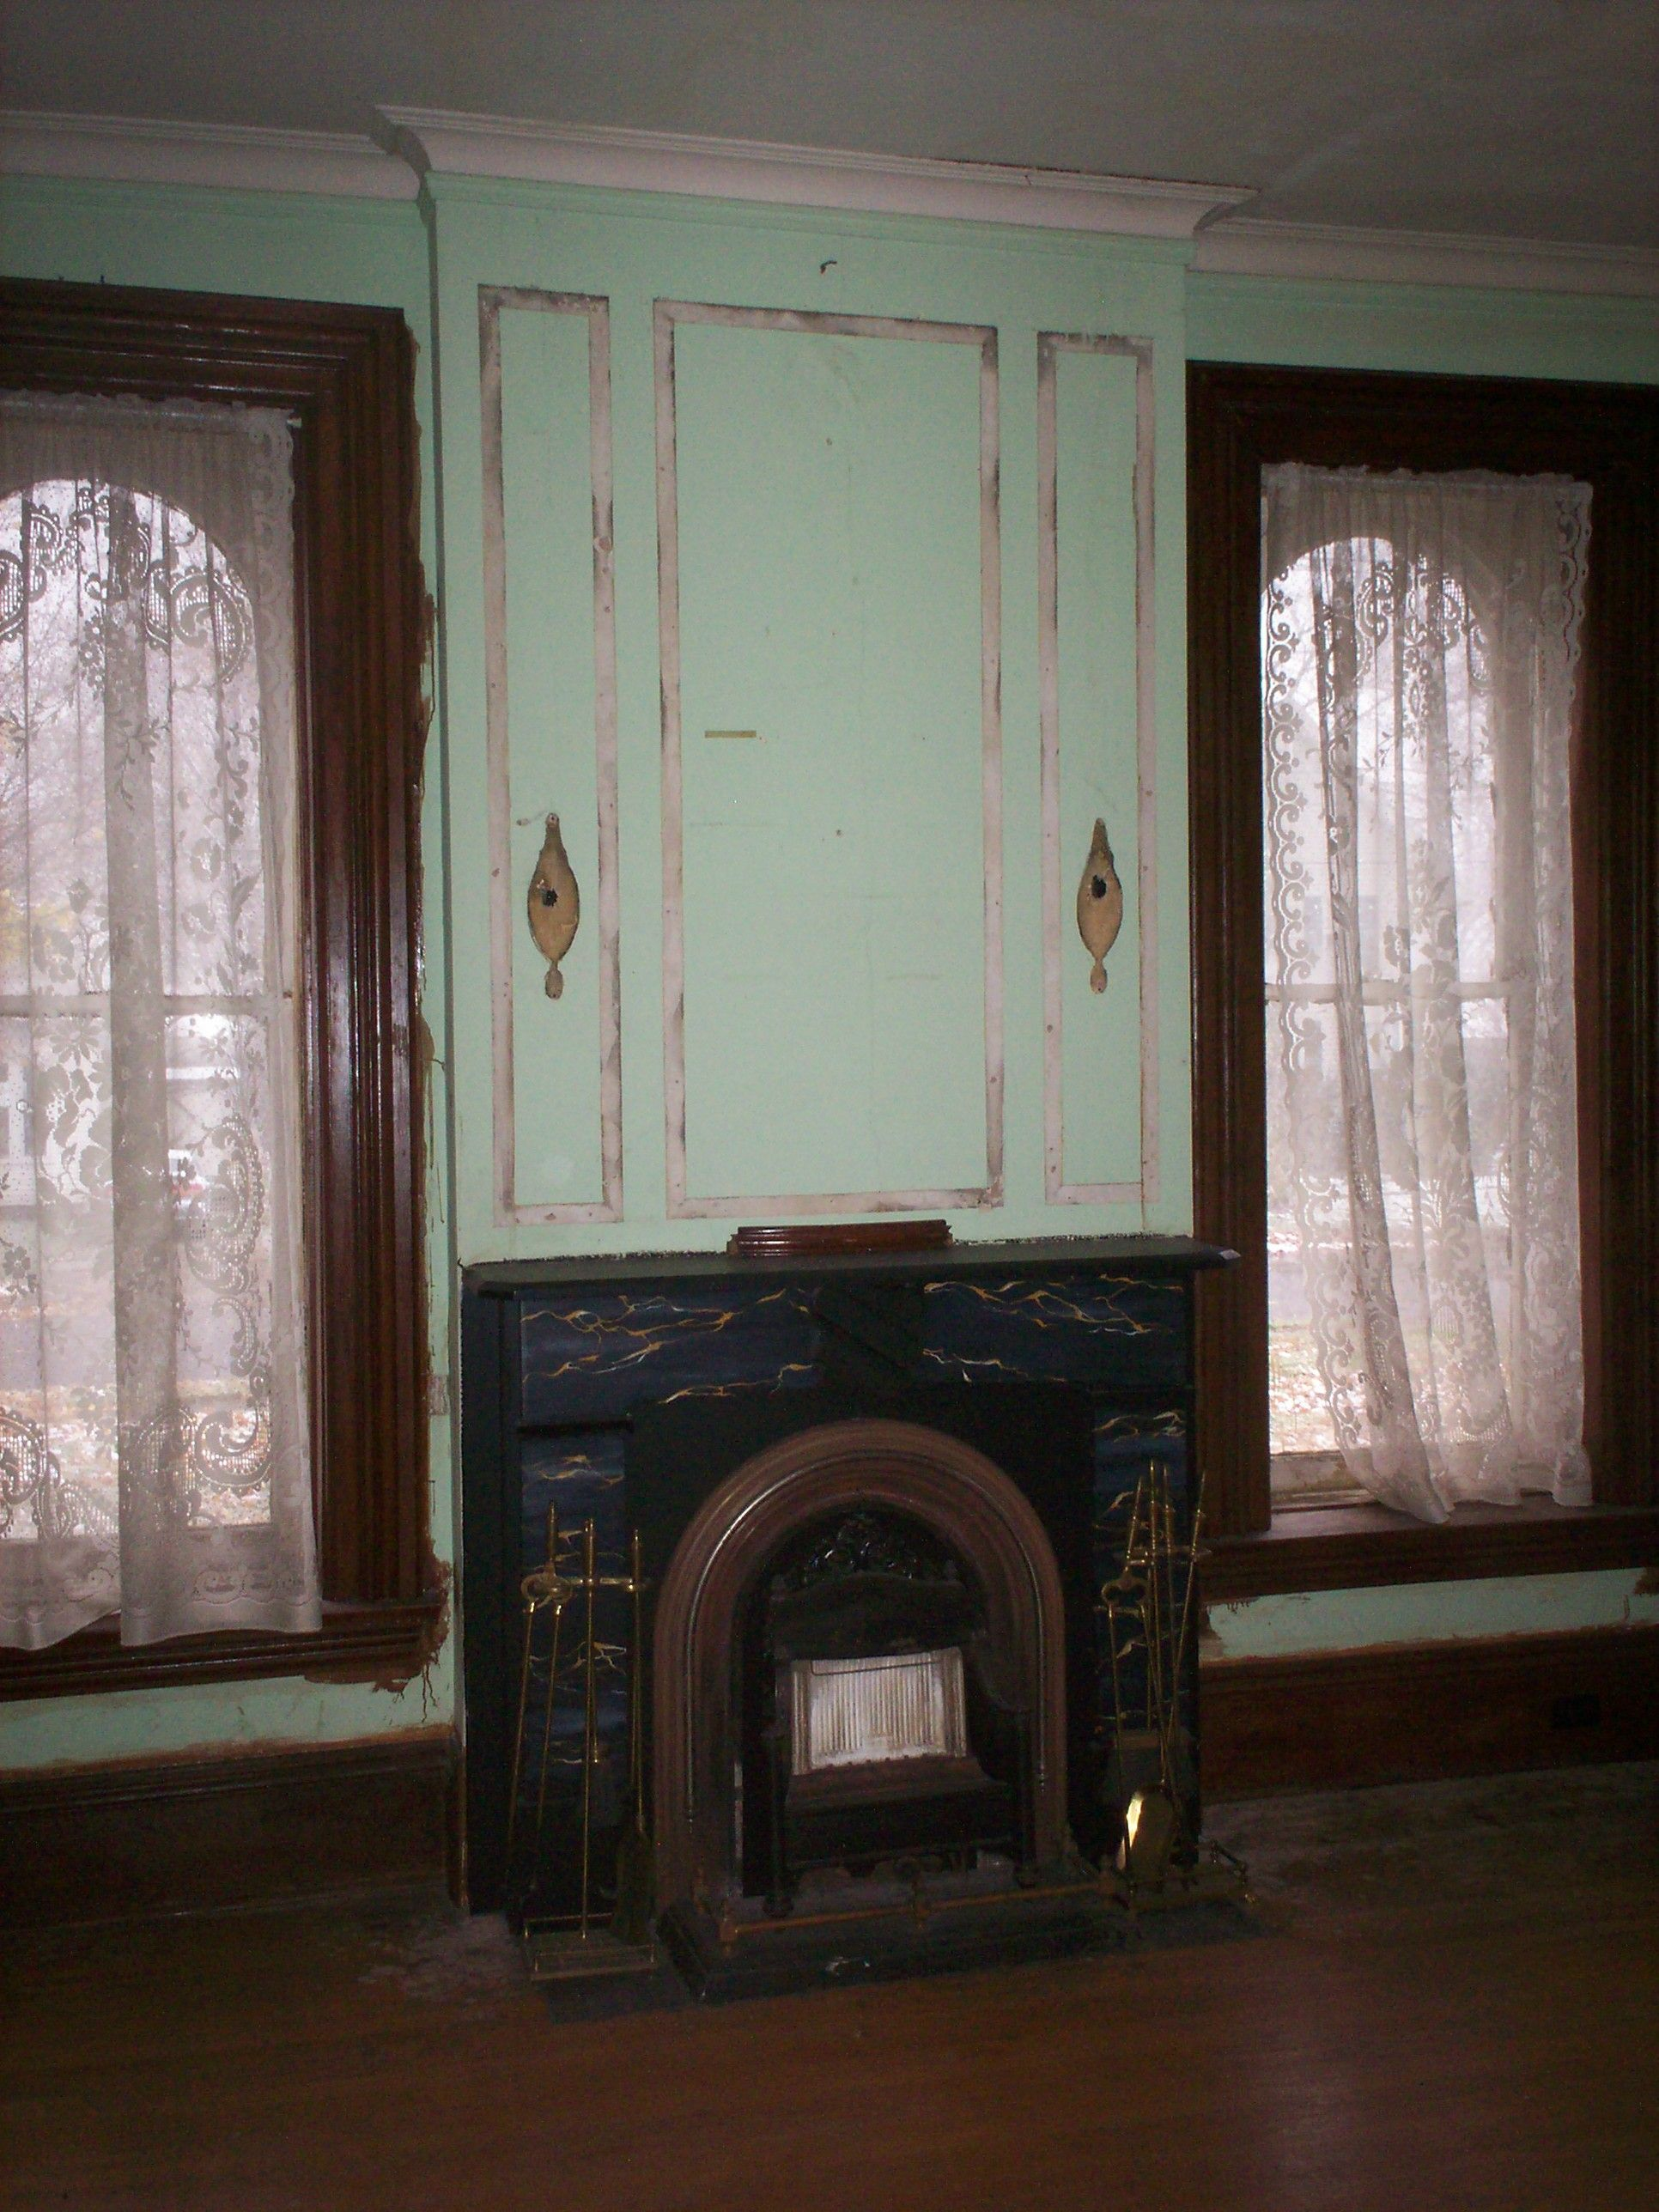 Dining room fireplace italianate houses pinterest for Dining room fireplace